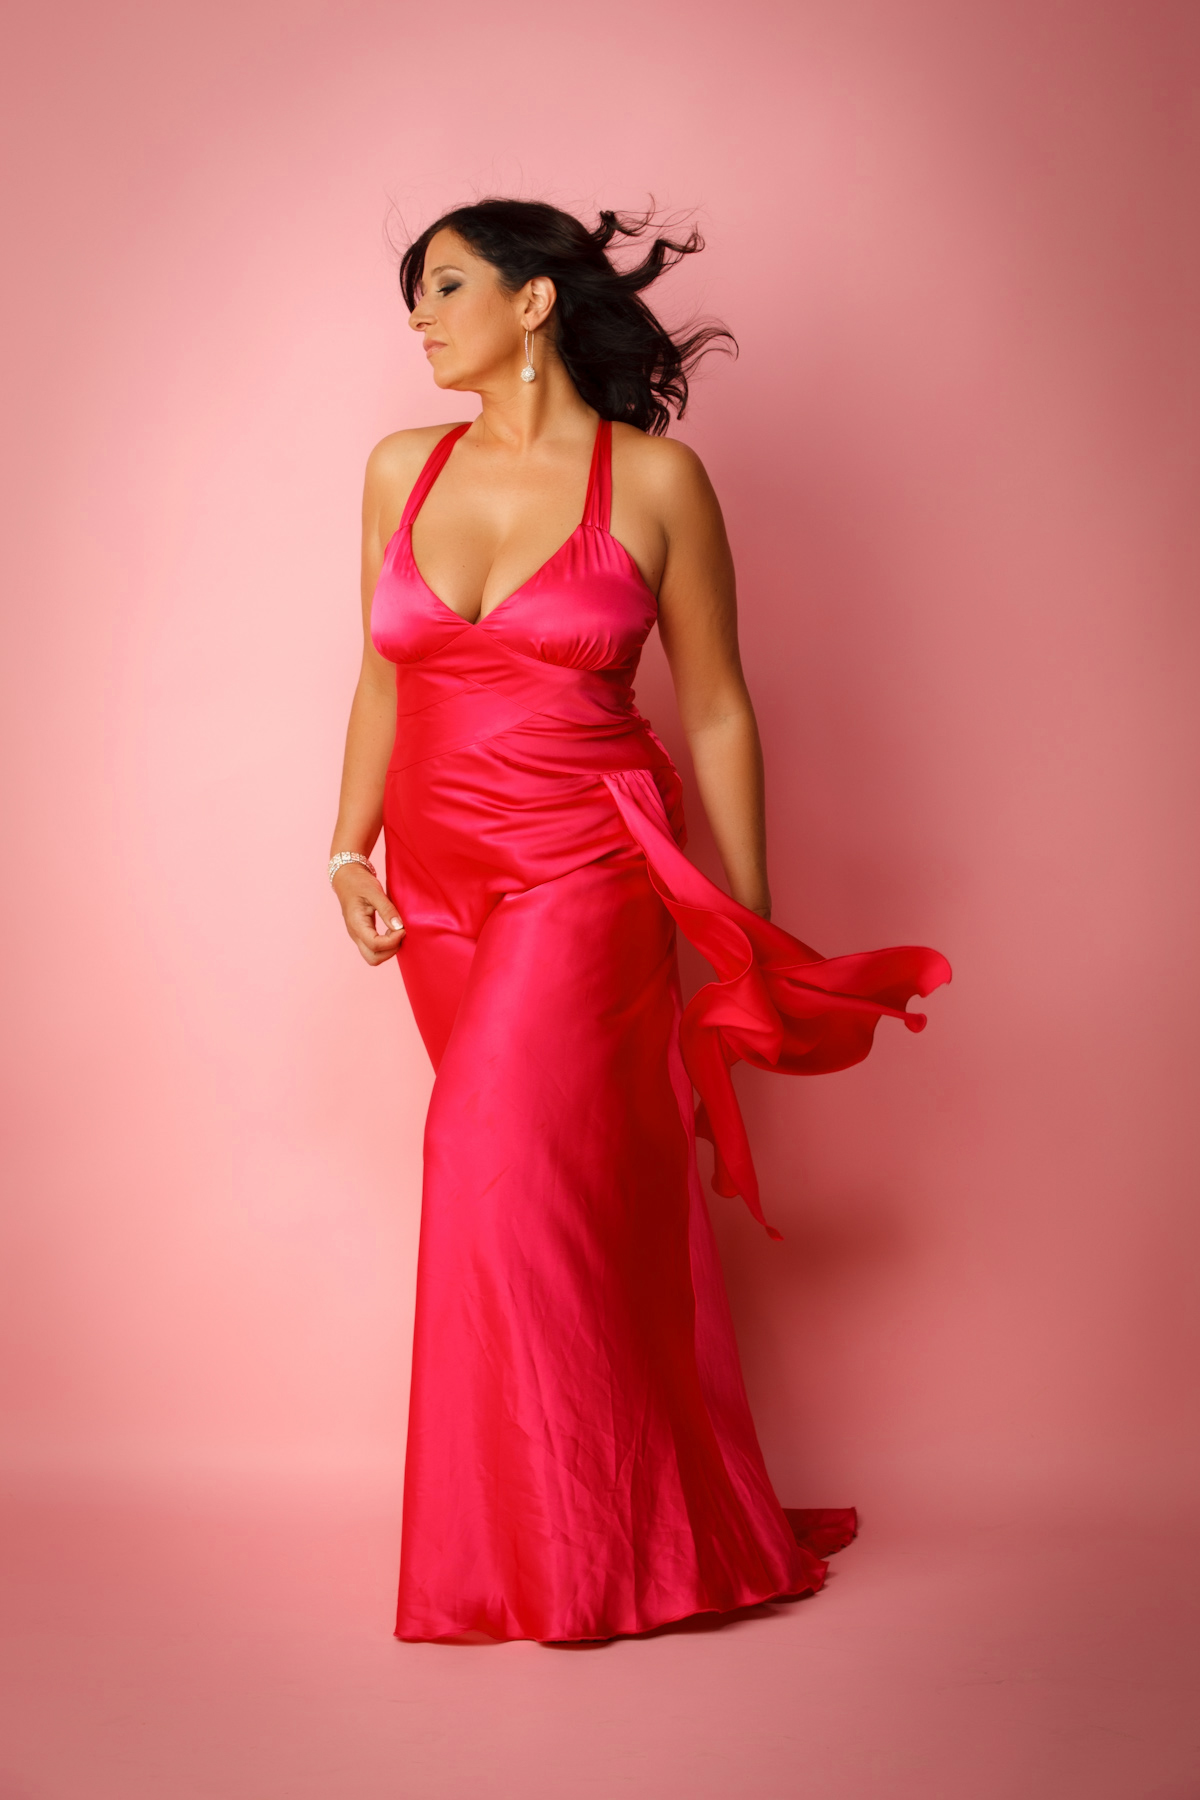 About Olivia | Sensual Tantra Massage Vancouver